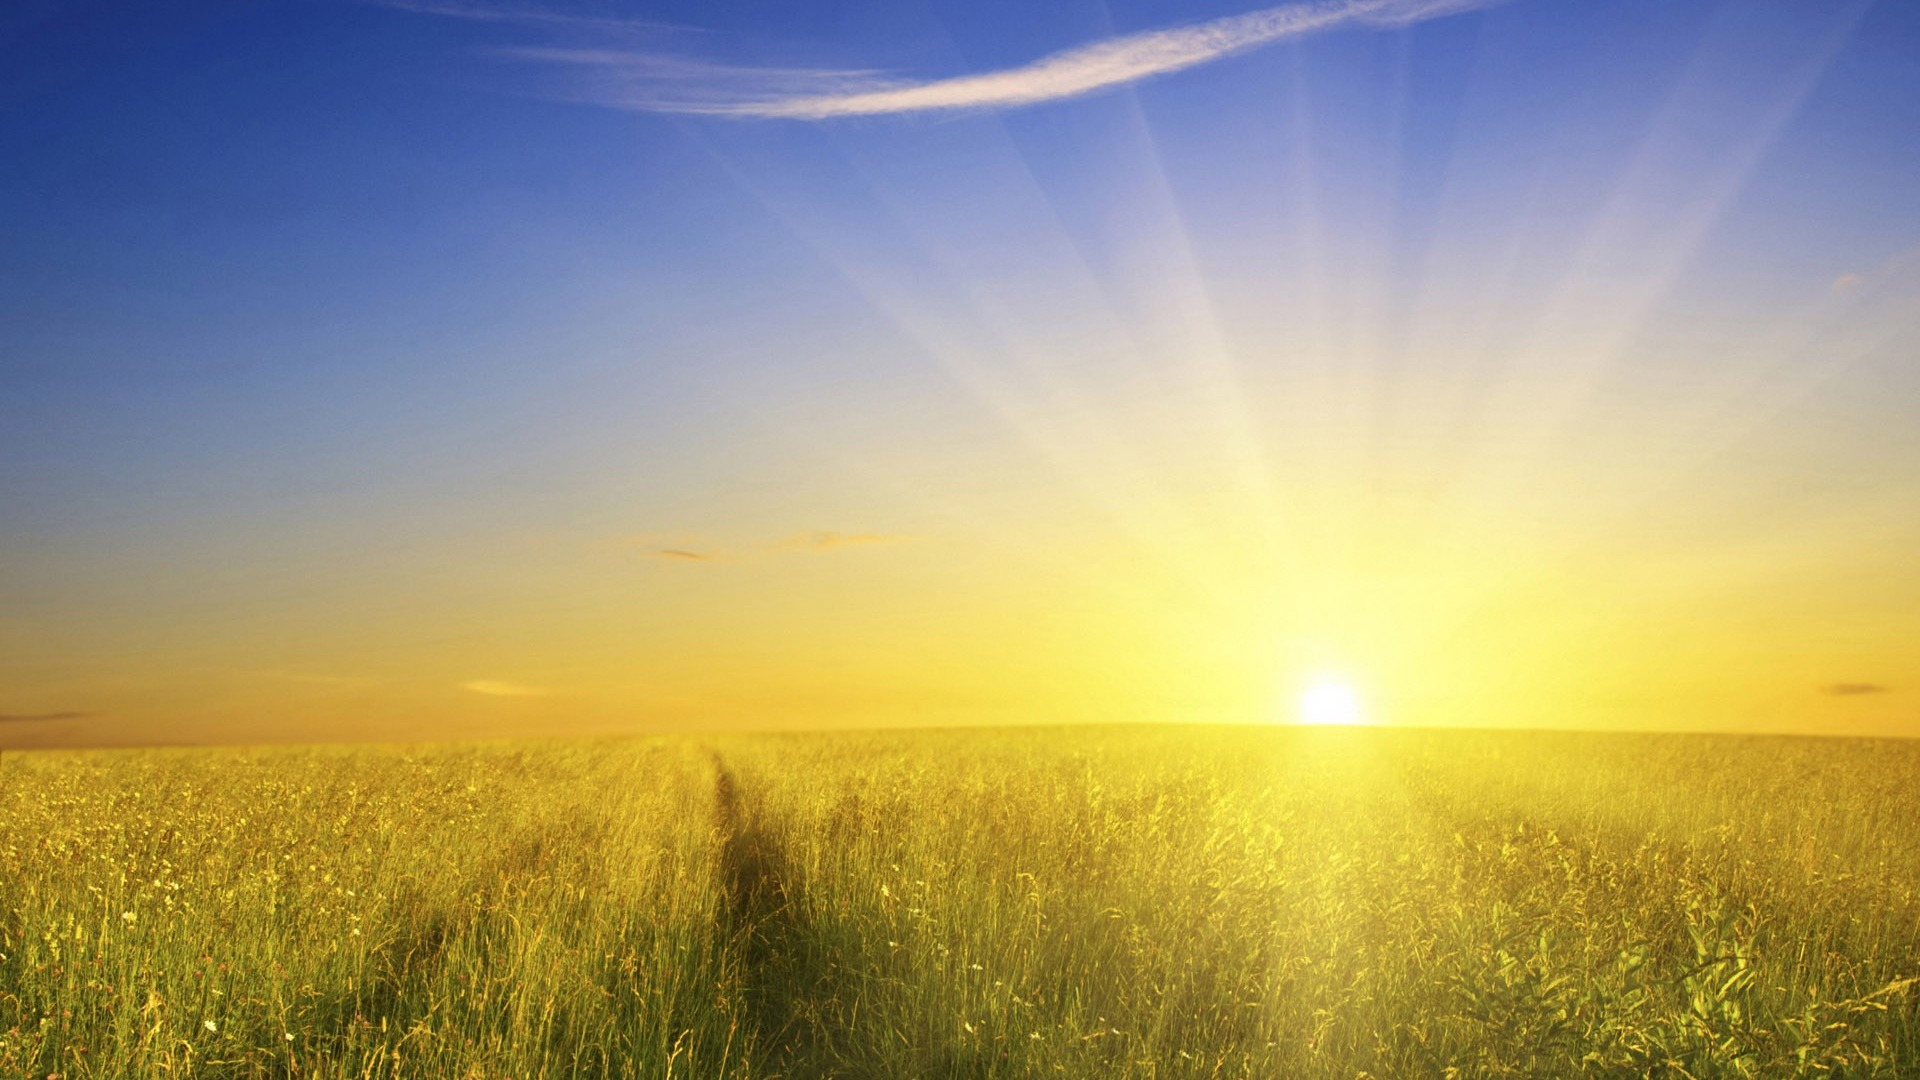 Morning Sunrise Wallpaper Images 6 HD Wallpapers